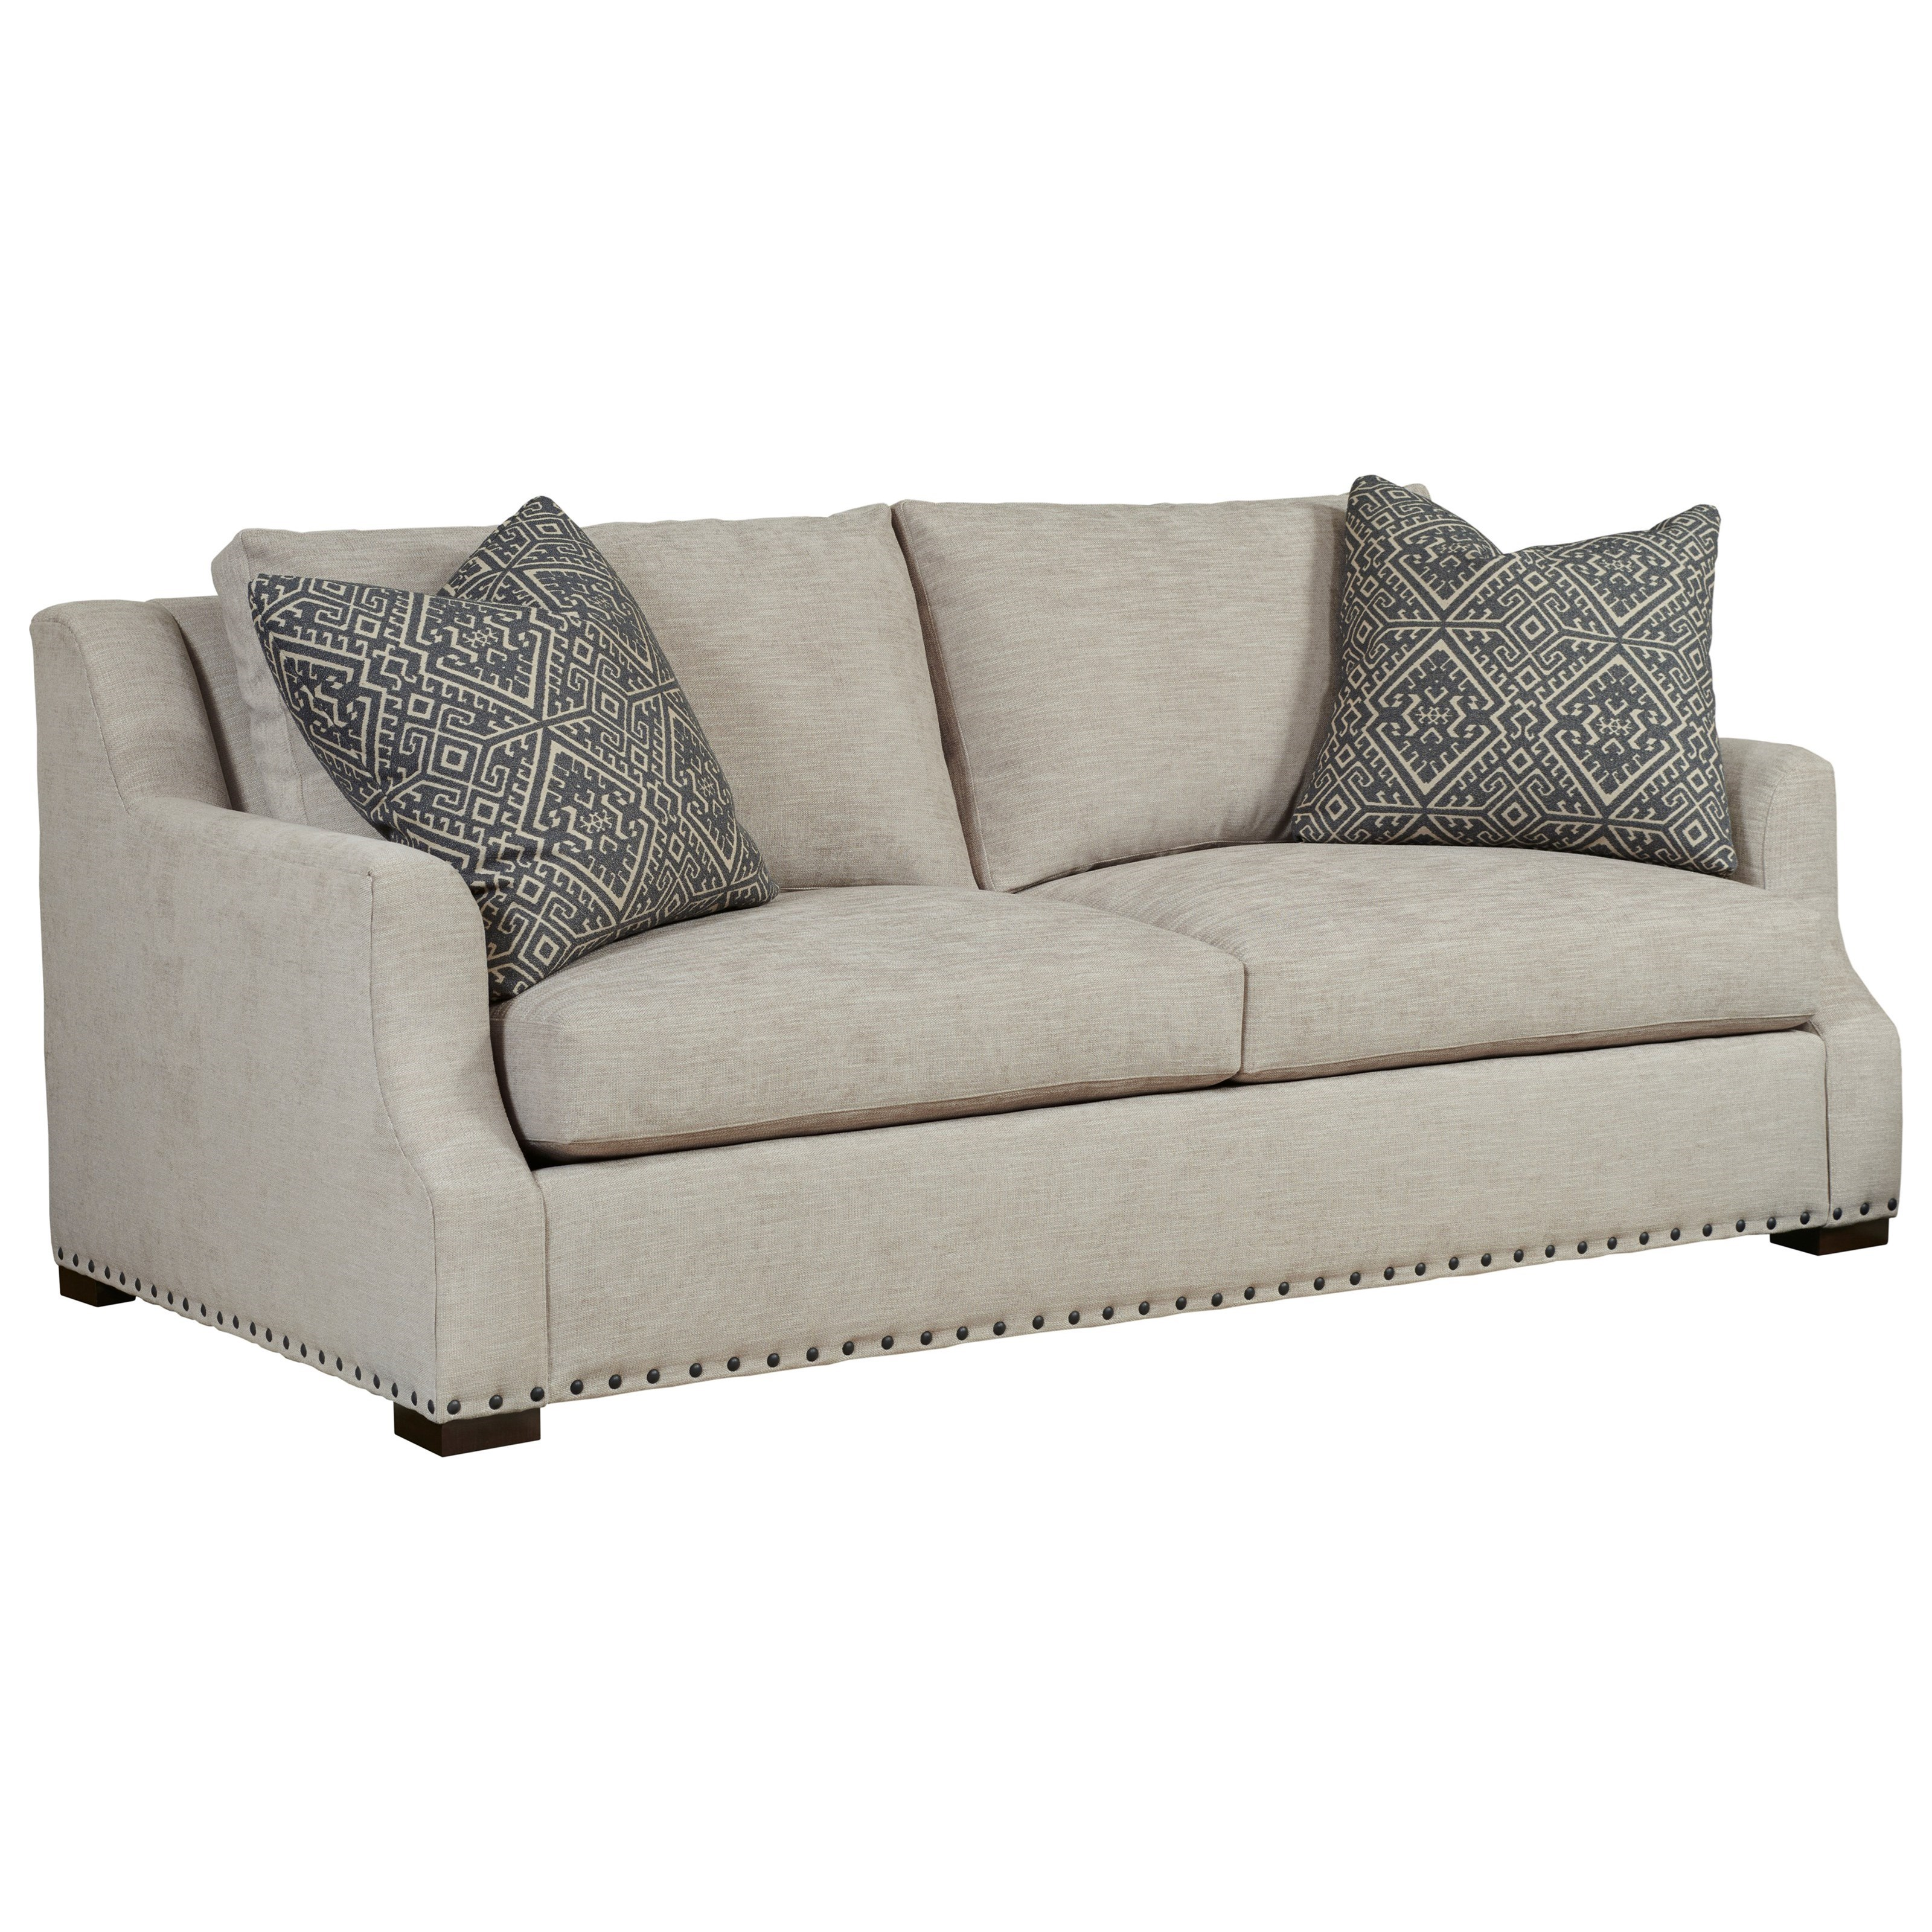 Comfort Select Customizable Sofa by Kincaid Furniture at Johnny Janosik